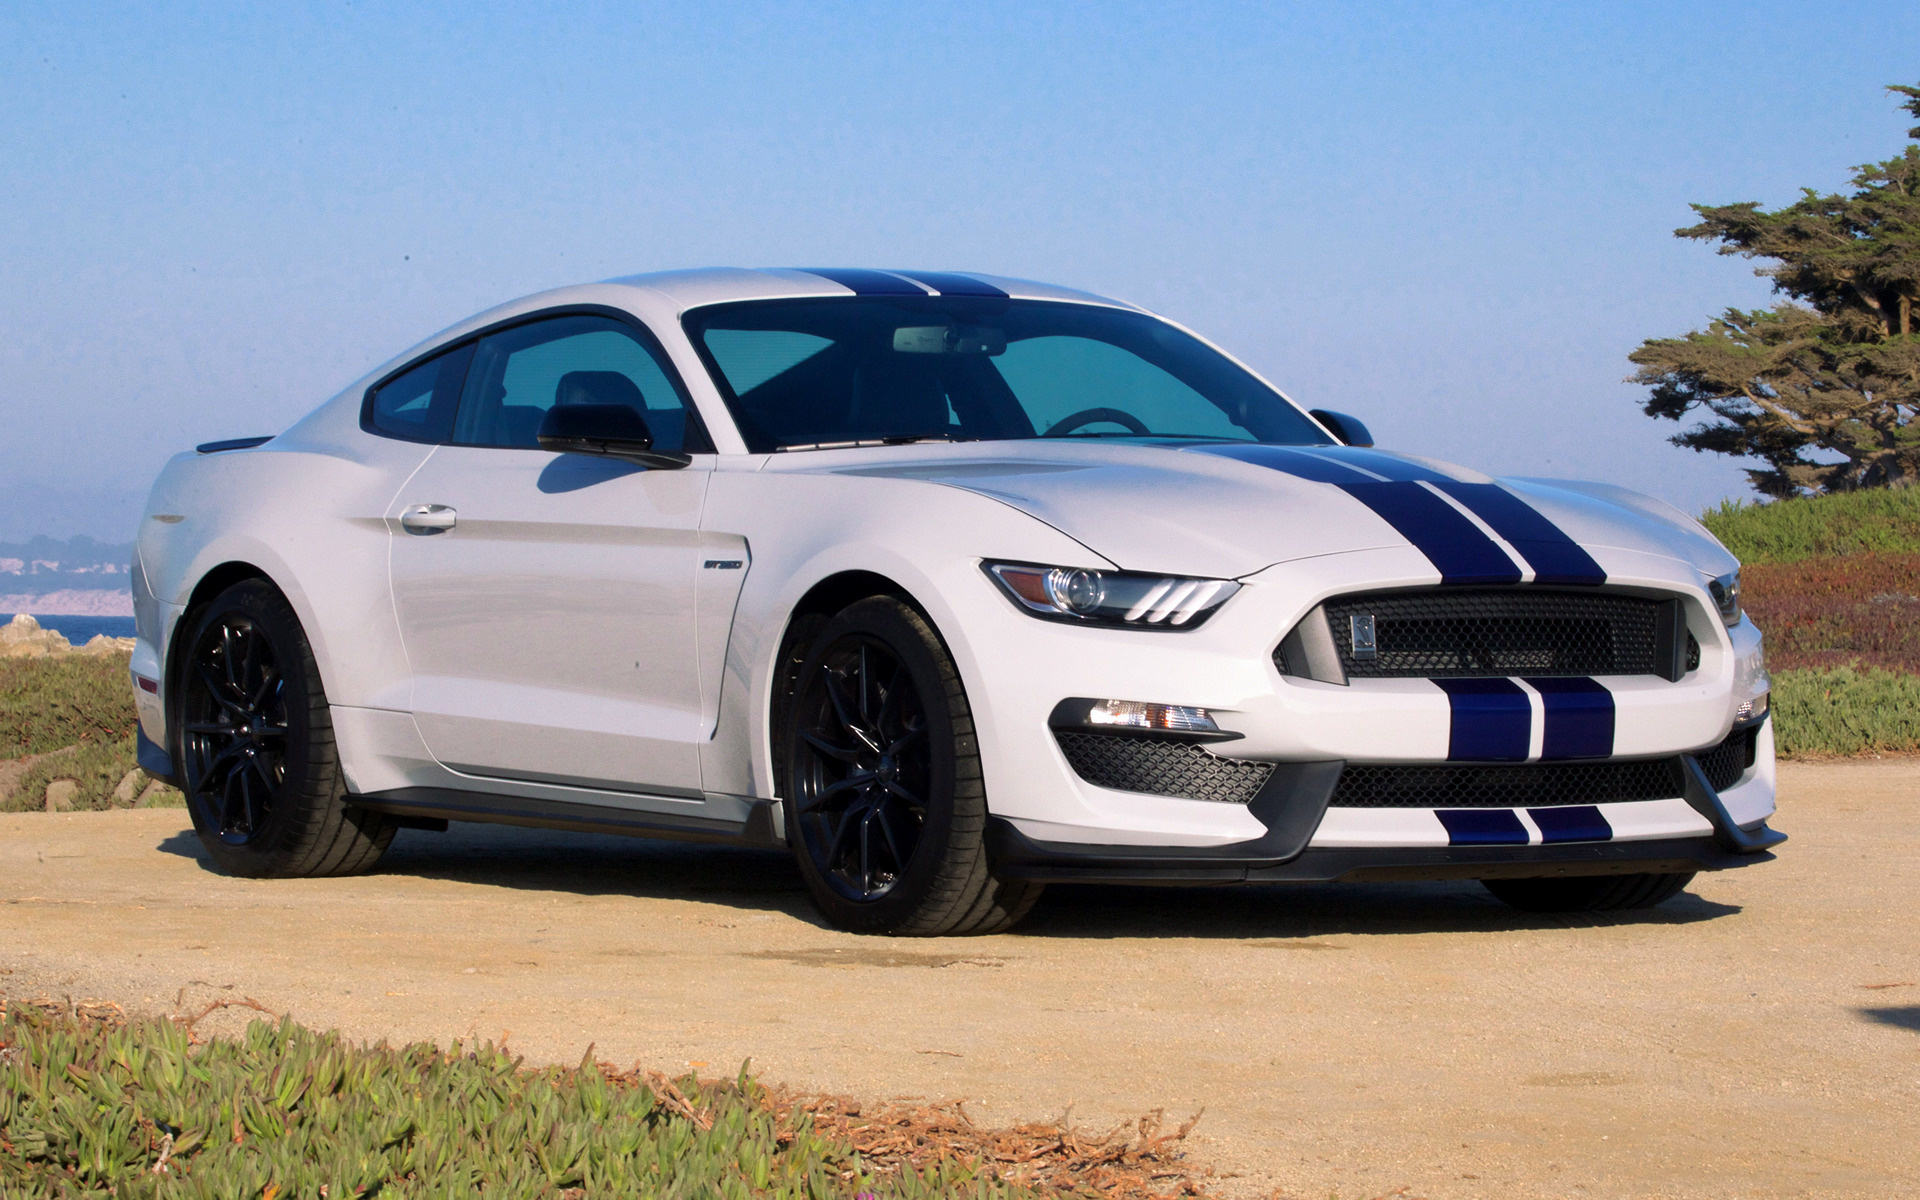 Hd Car Wallpapers Subaru 2016 Shelby Gt350 Mustang Wallpapers And Hd Images Car